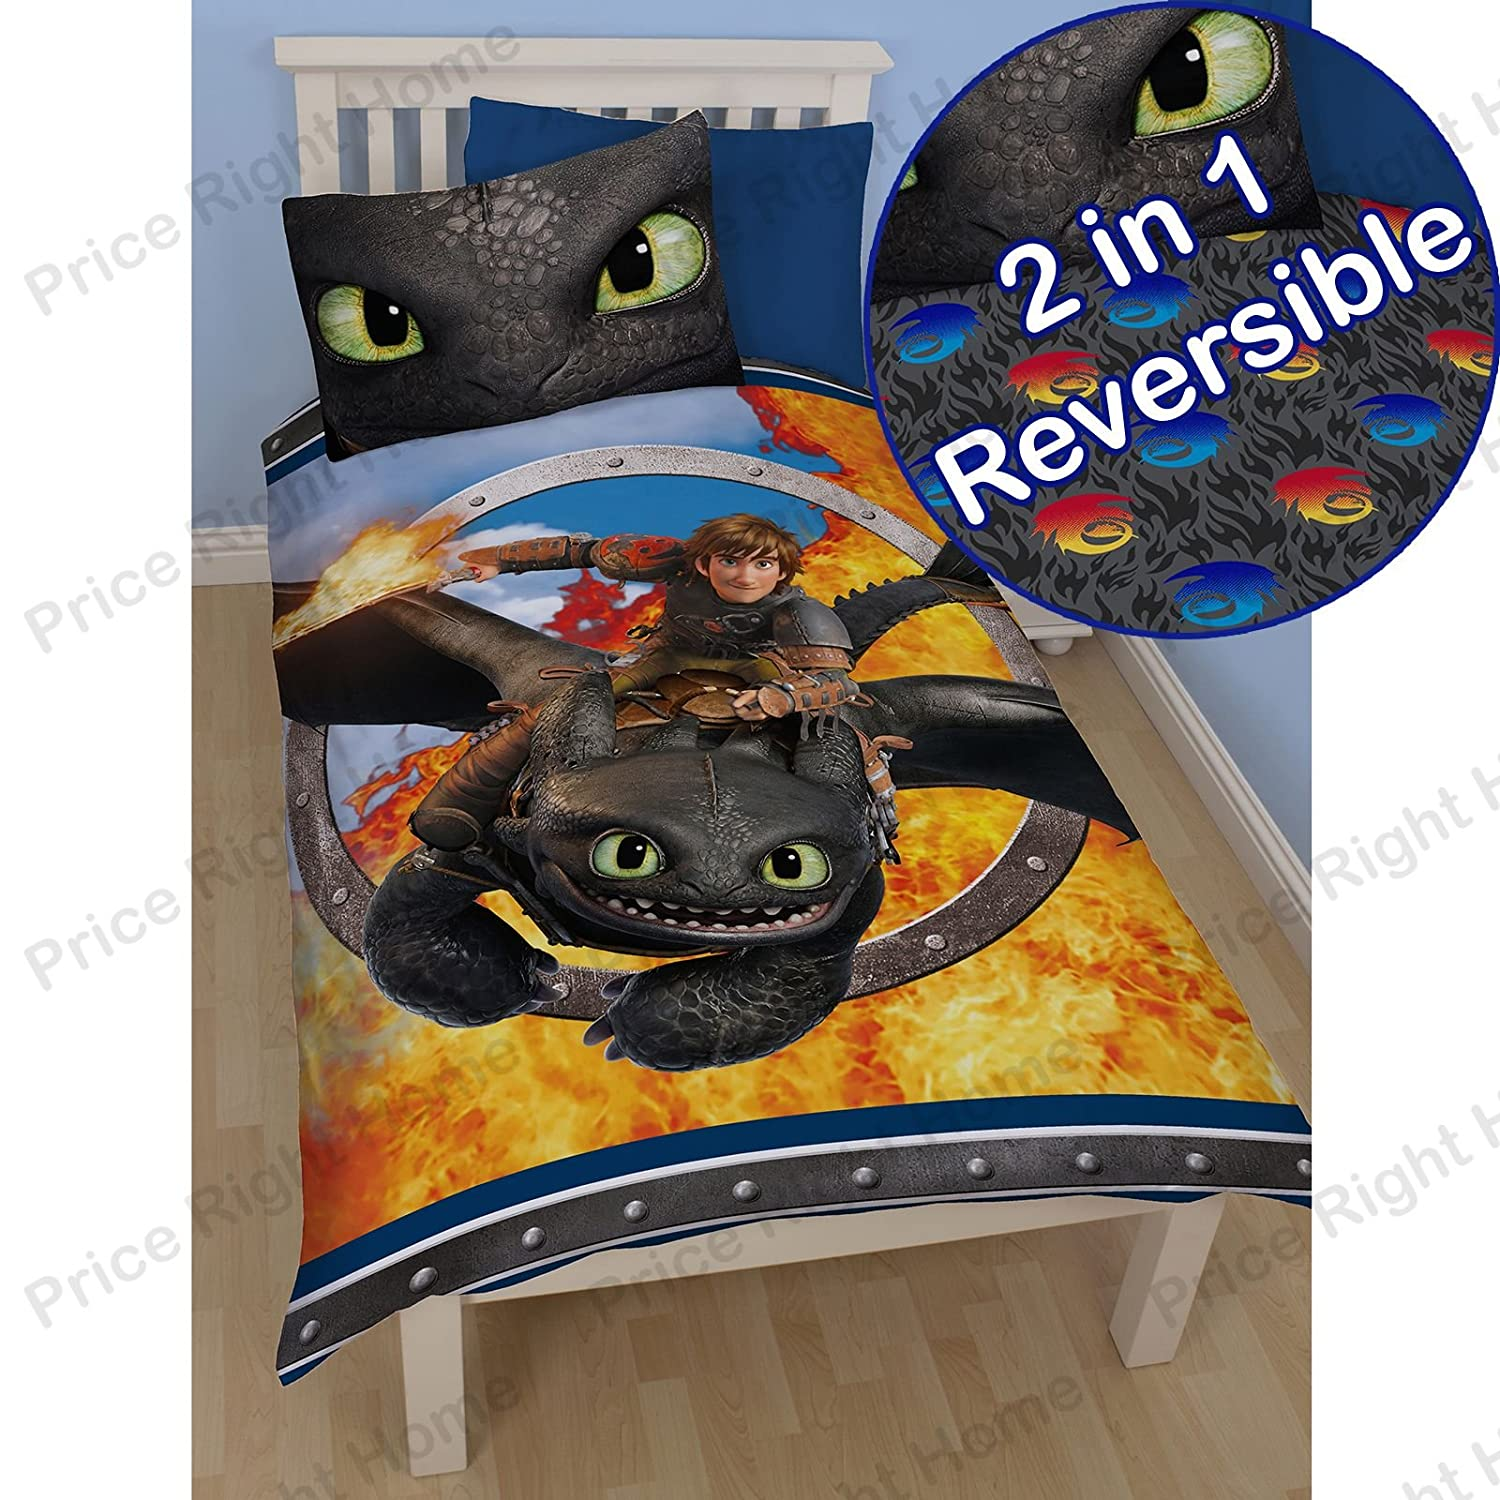 Character world dreamworks dragons toothless single panel duvet character world dreamworks dragons toothless single panel duvet set amazon kitchen home ccuart Image collections